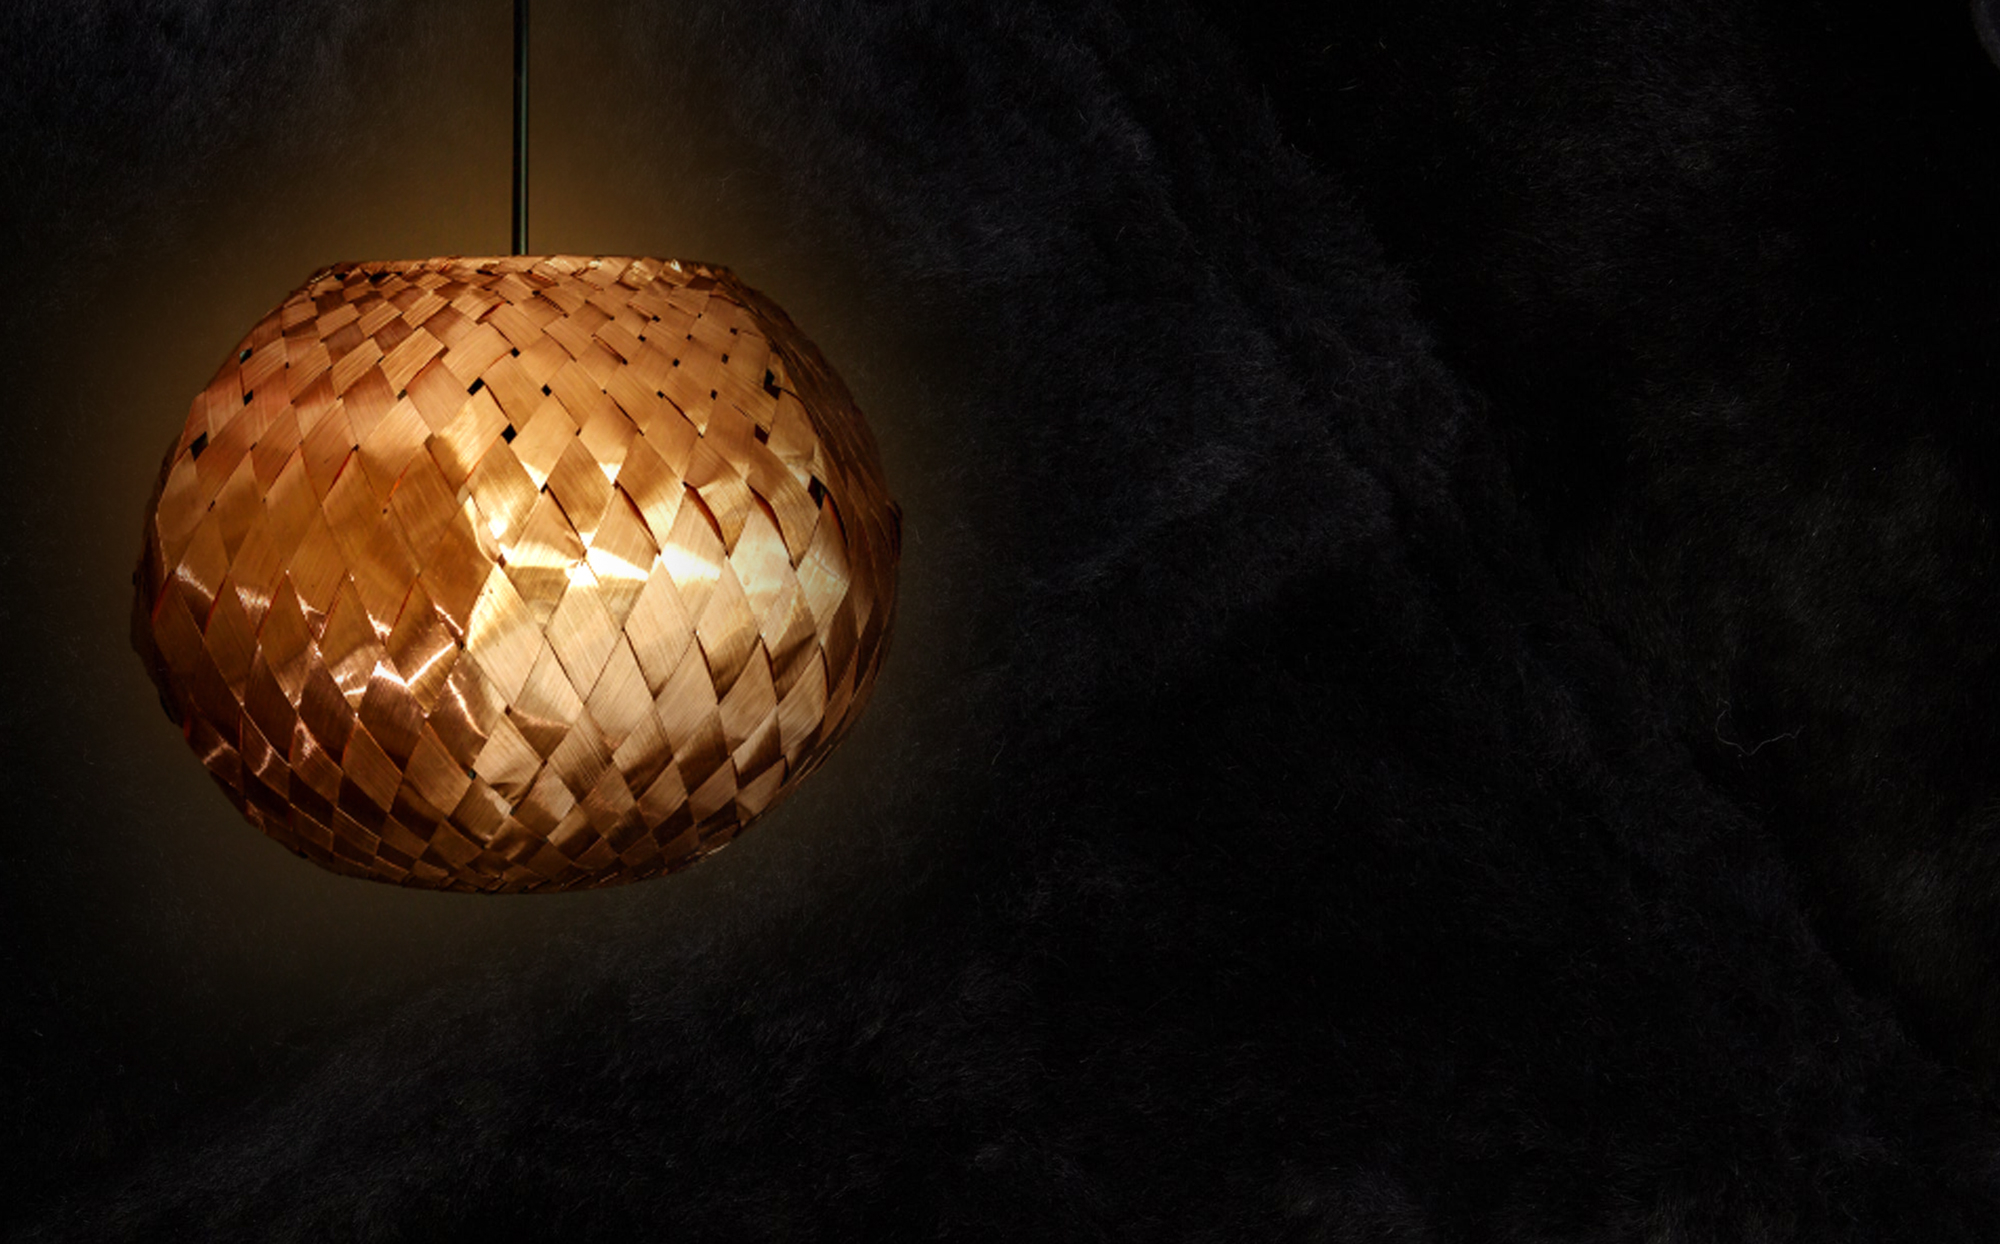 Simplicty as synonym of luxury    Our decorative lighting designs are a reflection of our love for simplicity and honesty of form paired with quality craftmanship and raw materials. The result is an understated elegance which has become the signature of CU29. We strive for each of our designs to be truly collectible.